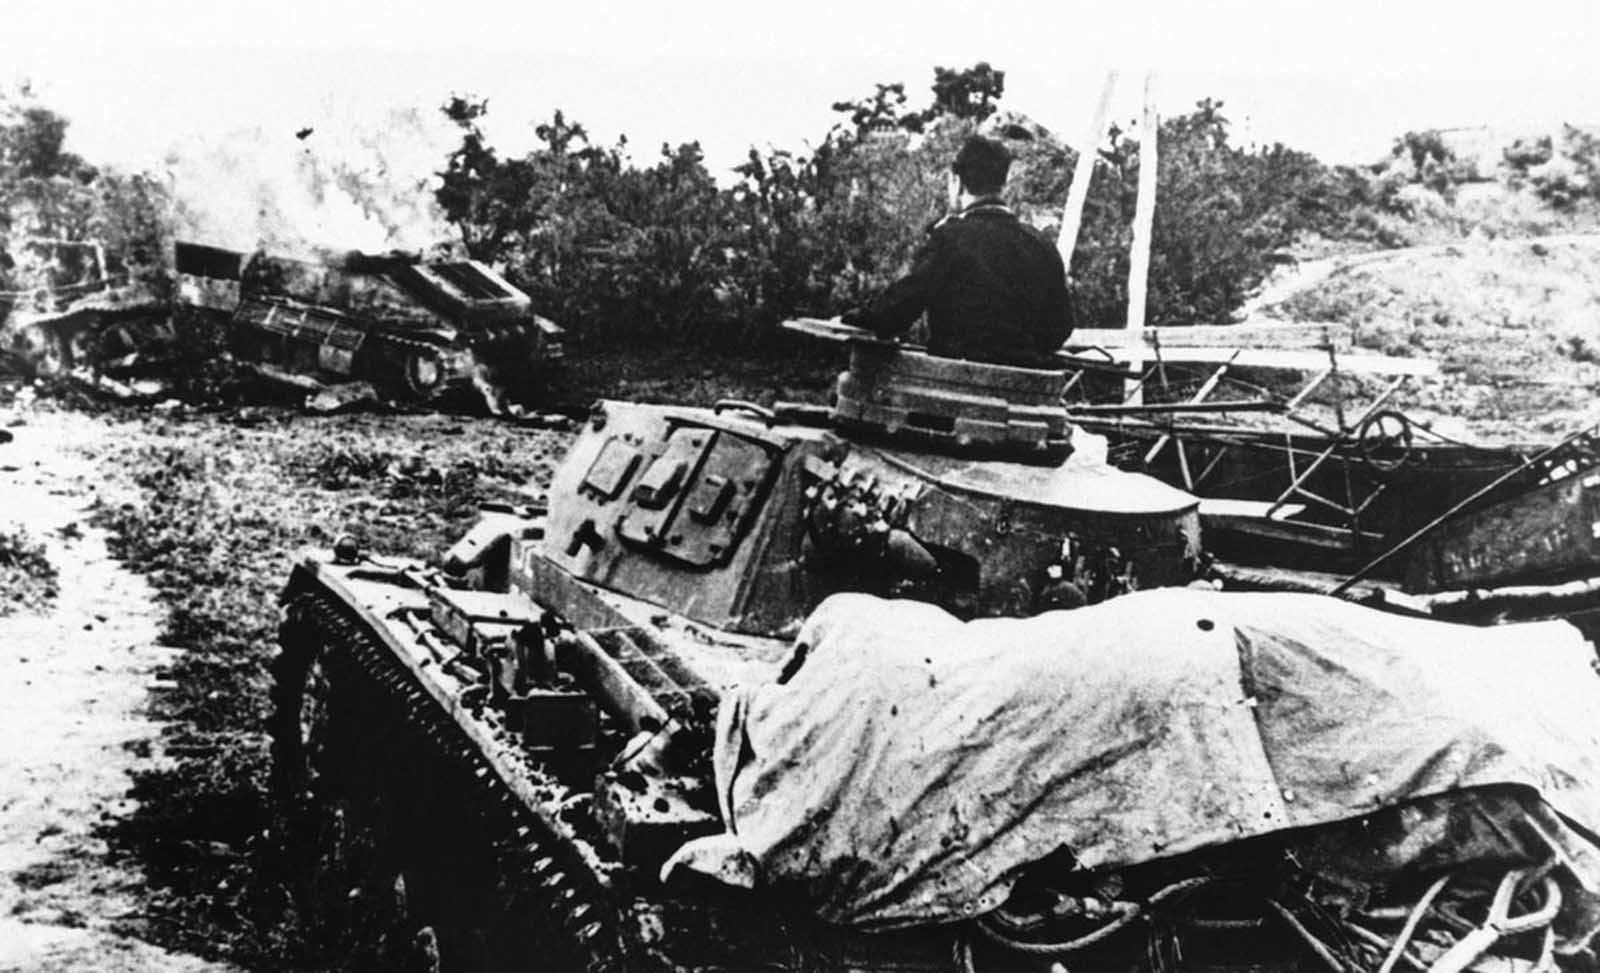 A German tank rolls up to its defeated enemy tank which burns near the edge of a patch of woods, somewhere in Russia, on October 20, 1942.